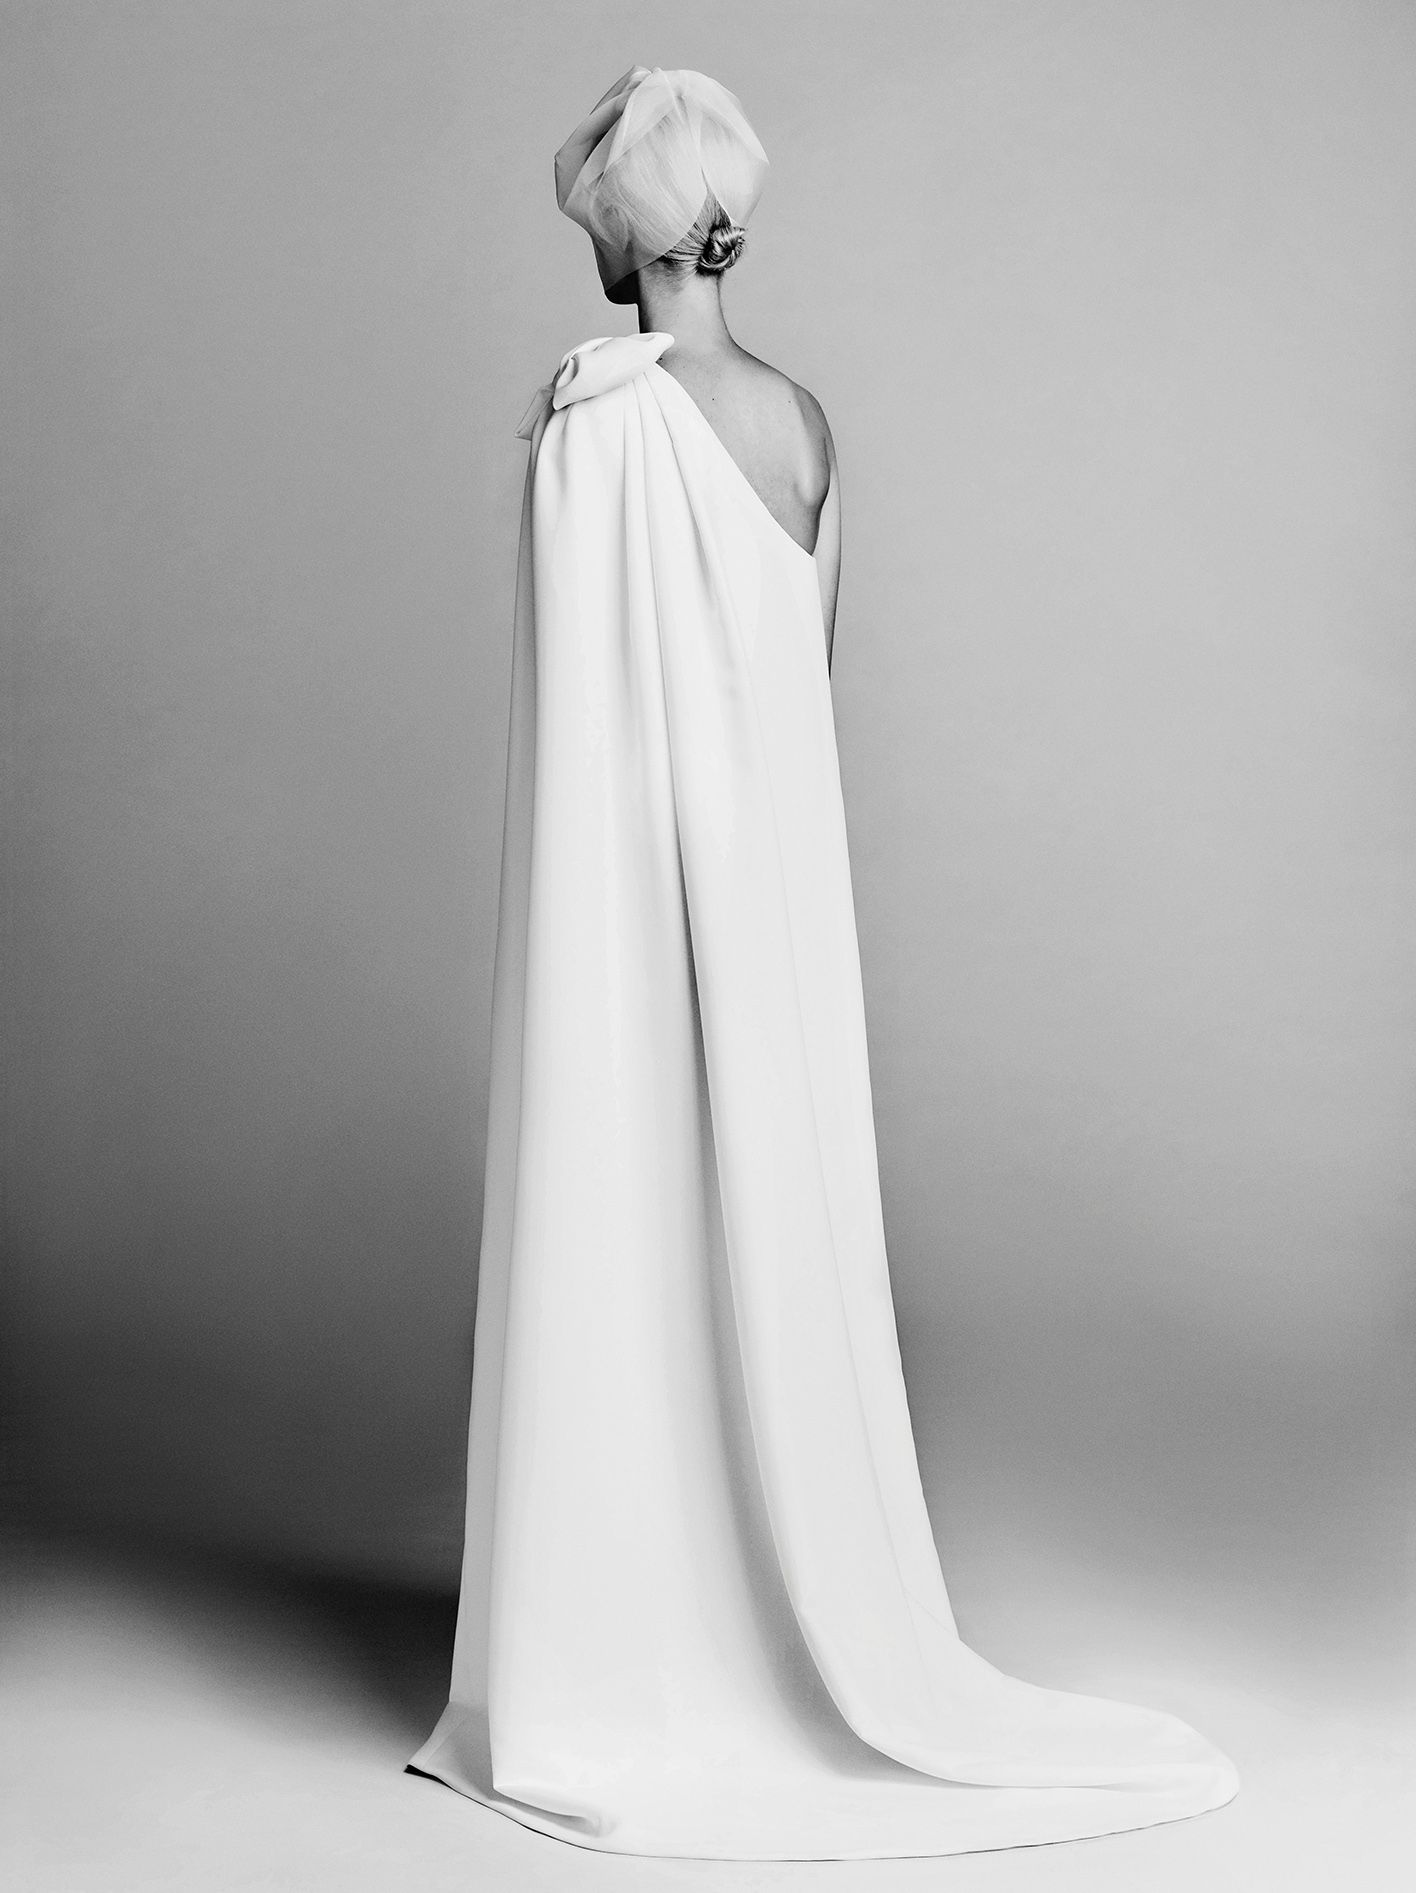 Wedding dress with bow on back  BOW CAPE DRESS BACK  all things bridal  Pinterest  Cape Viktor